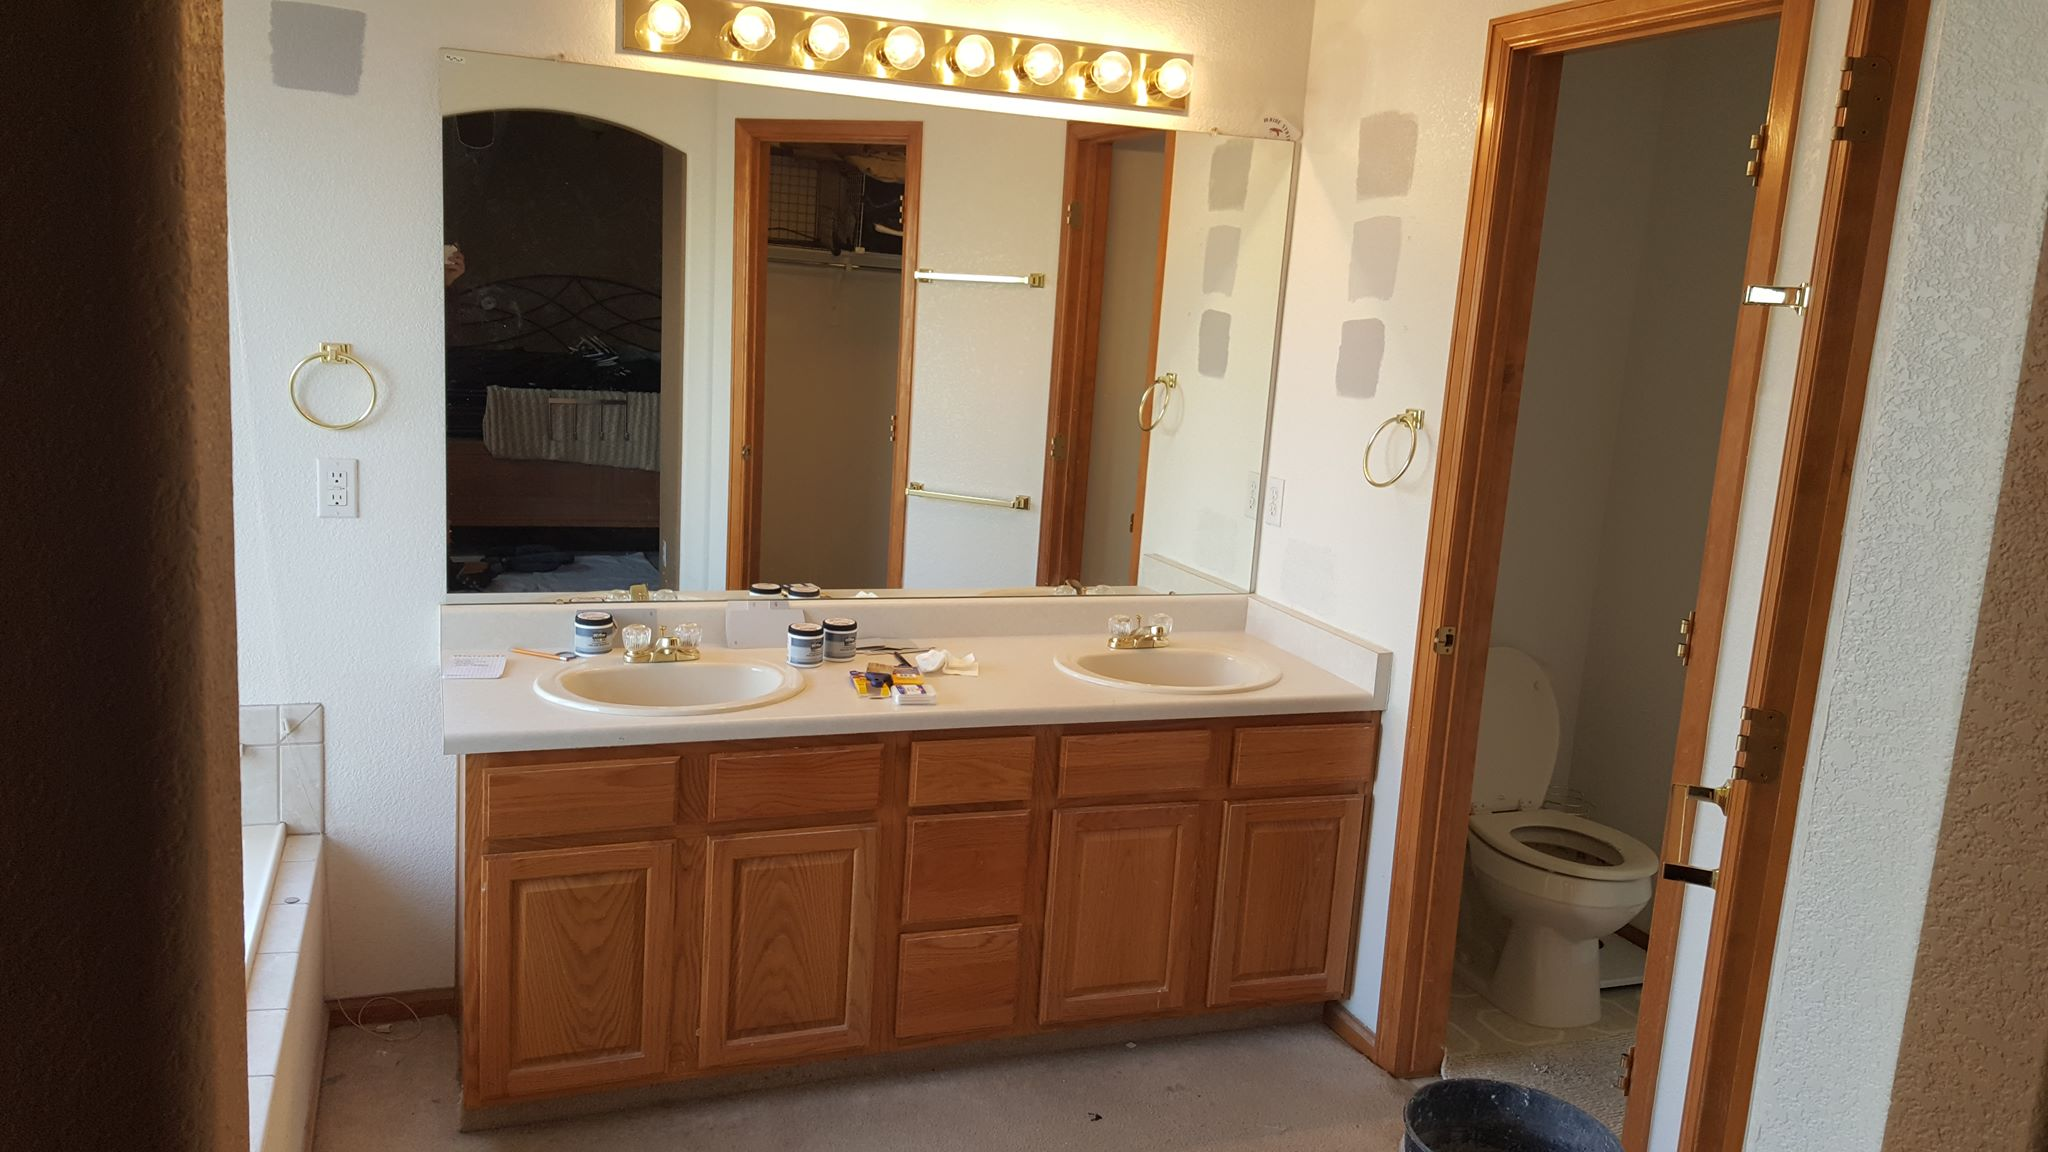 Current Projects Westminster Boulder CO - Bathroom remodeling boulder colorado